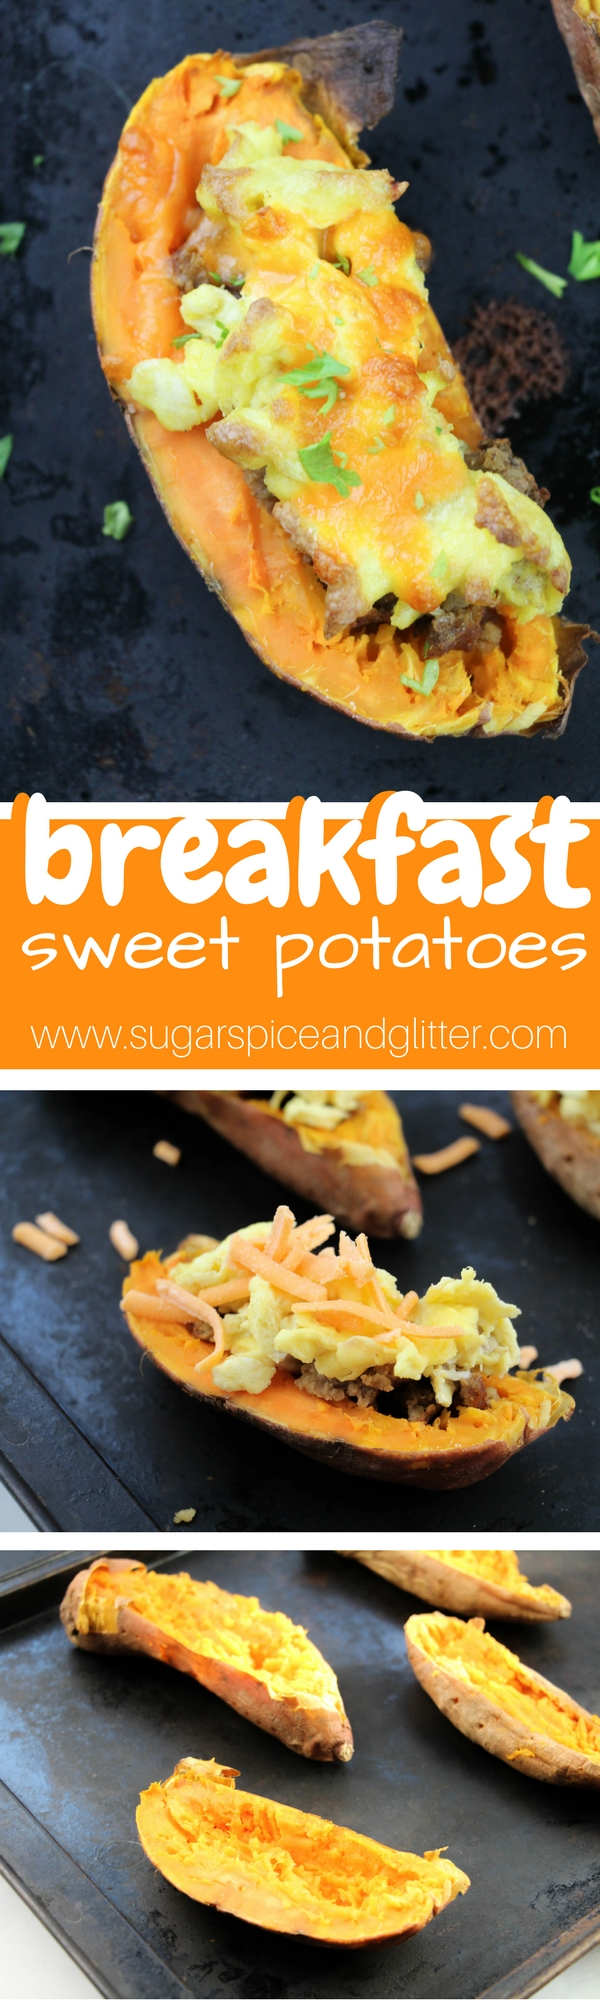 15-minute Breakfast Sweet Potatoes - a delicious, healthy breakfast inspired by twice-baked potatoes. A sweet and savory brunch vegetable recipe